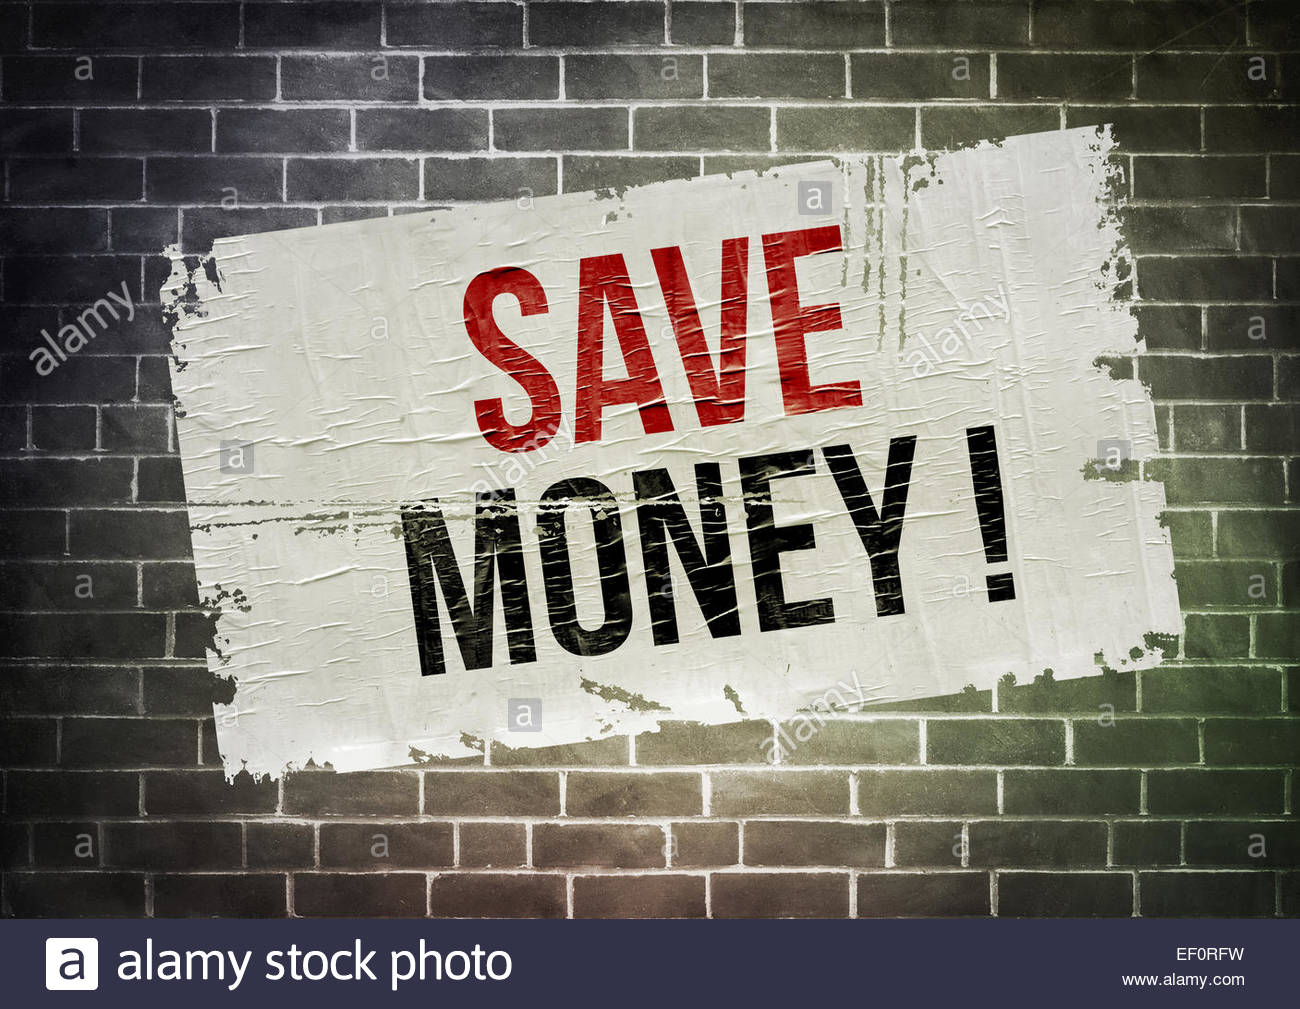 Save money poster concept - Stock Image